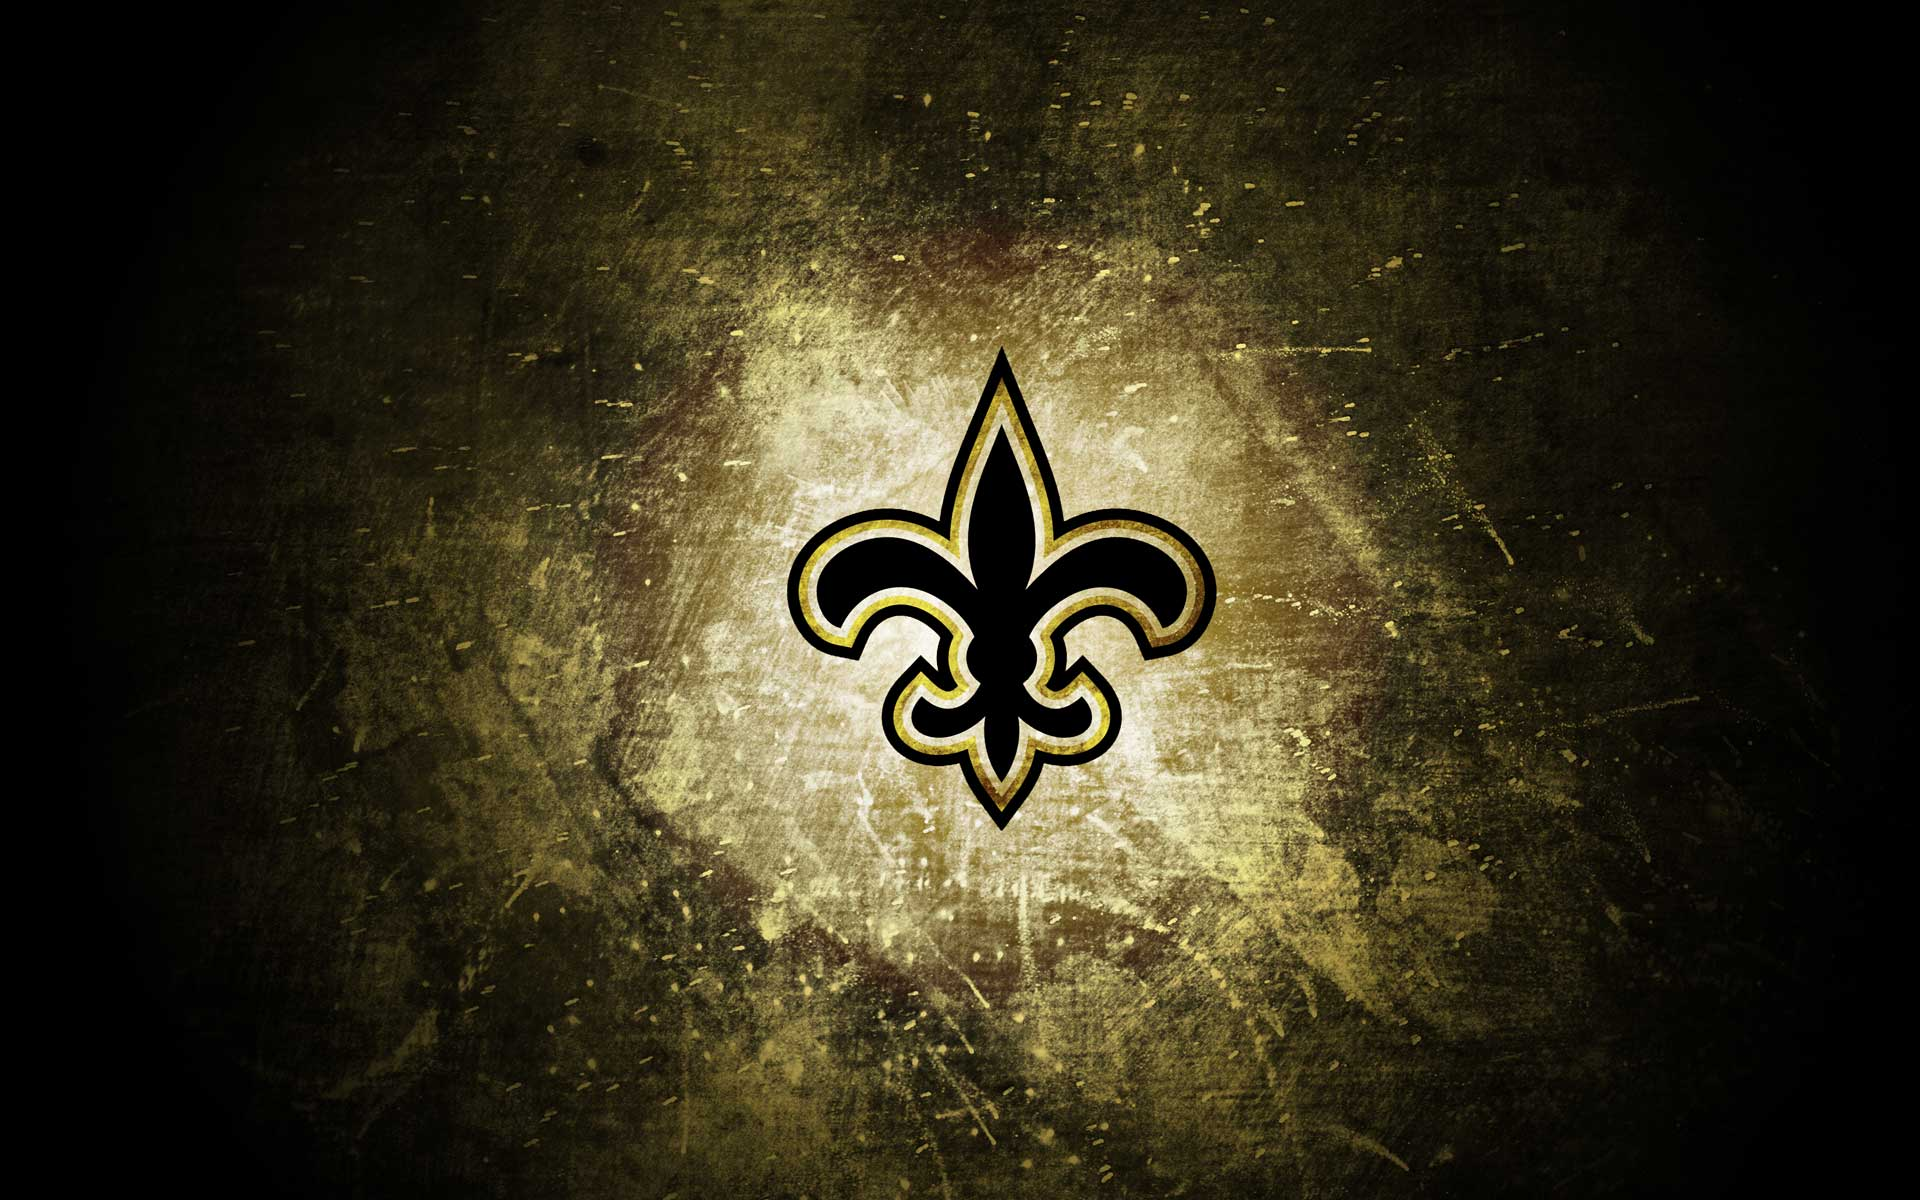 Eagles Vs Saints Latest News Images And Photos CrypticImages